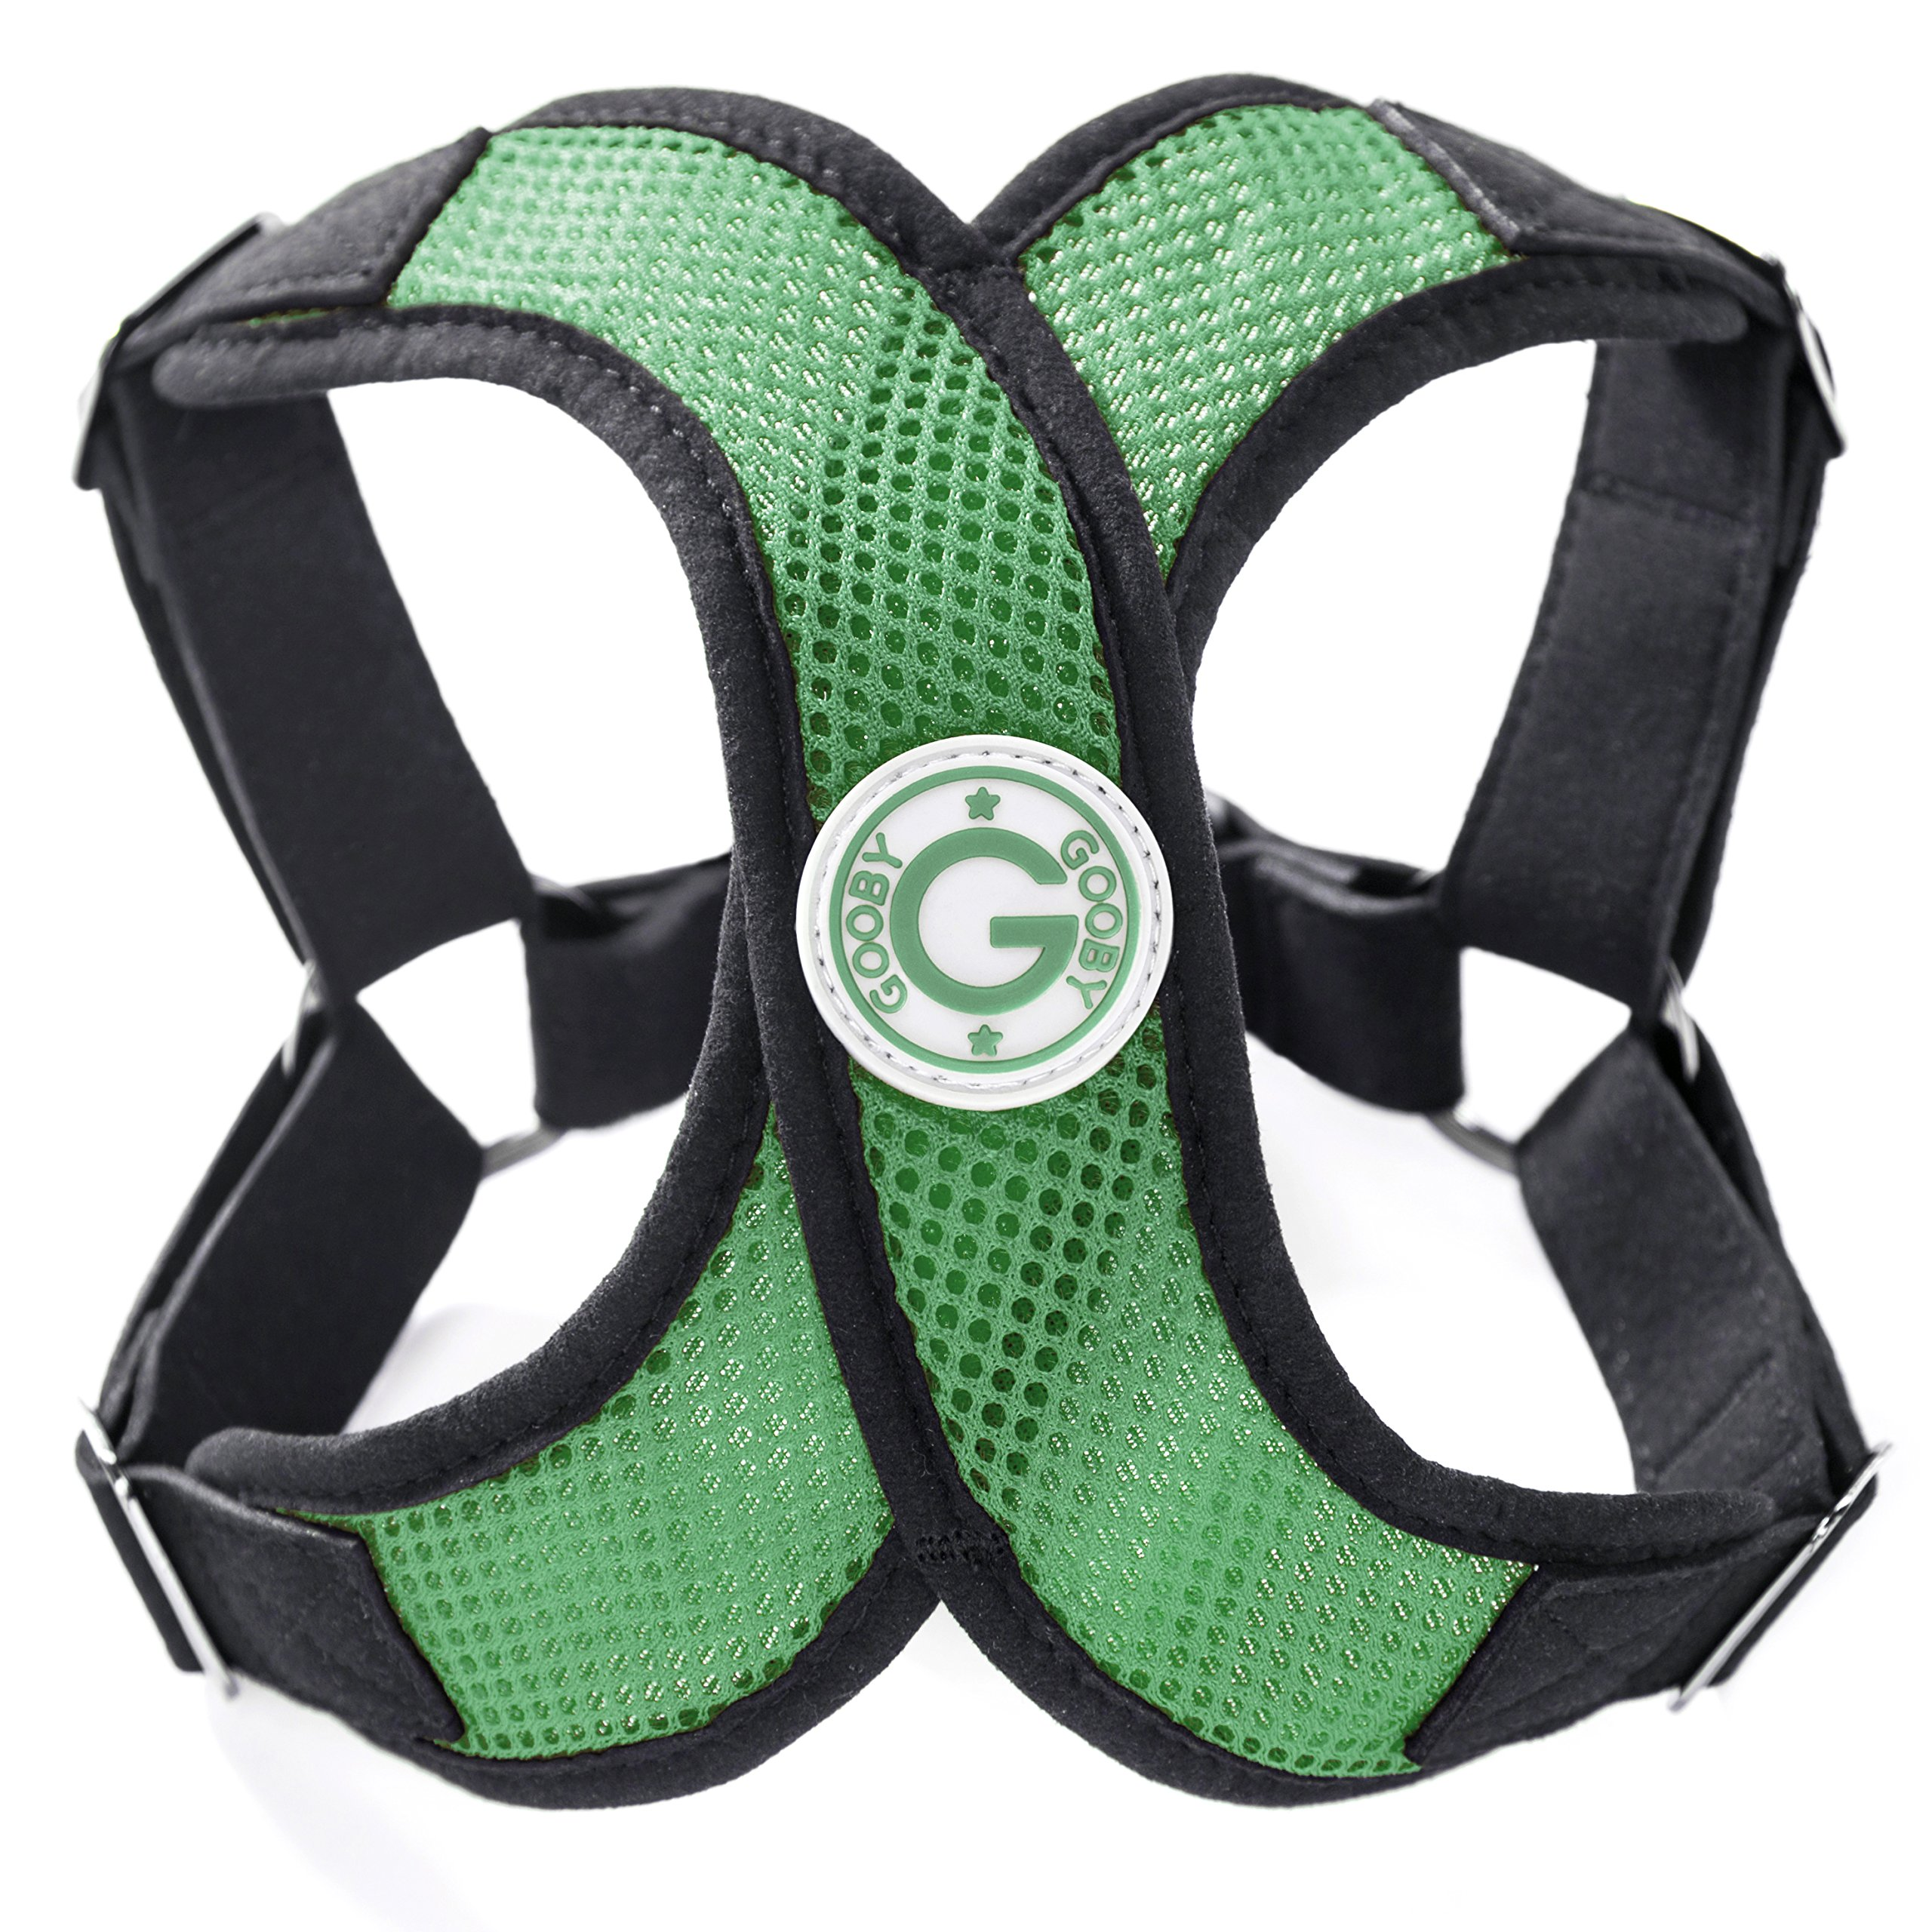 Gooby - X Harness, Small Dog Choke Free Step-in Harness with Synthetic Lambskin Soft Strap, Hunter Green, Small by Gooby